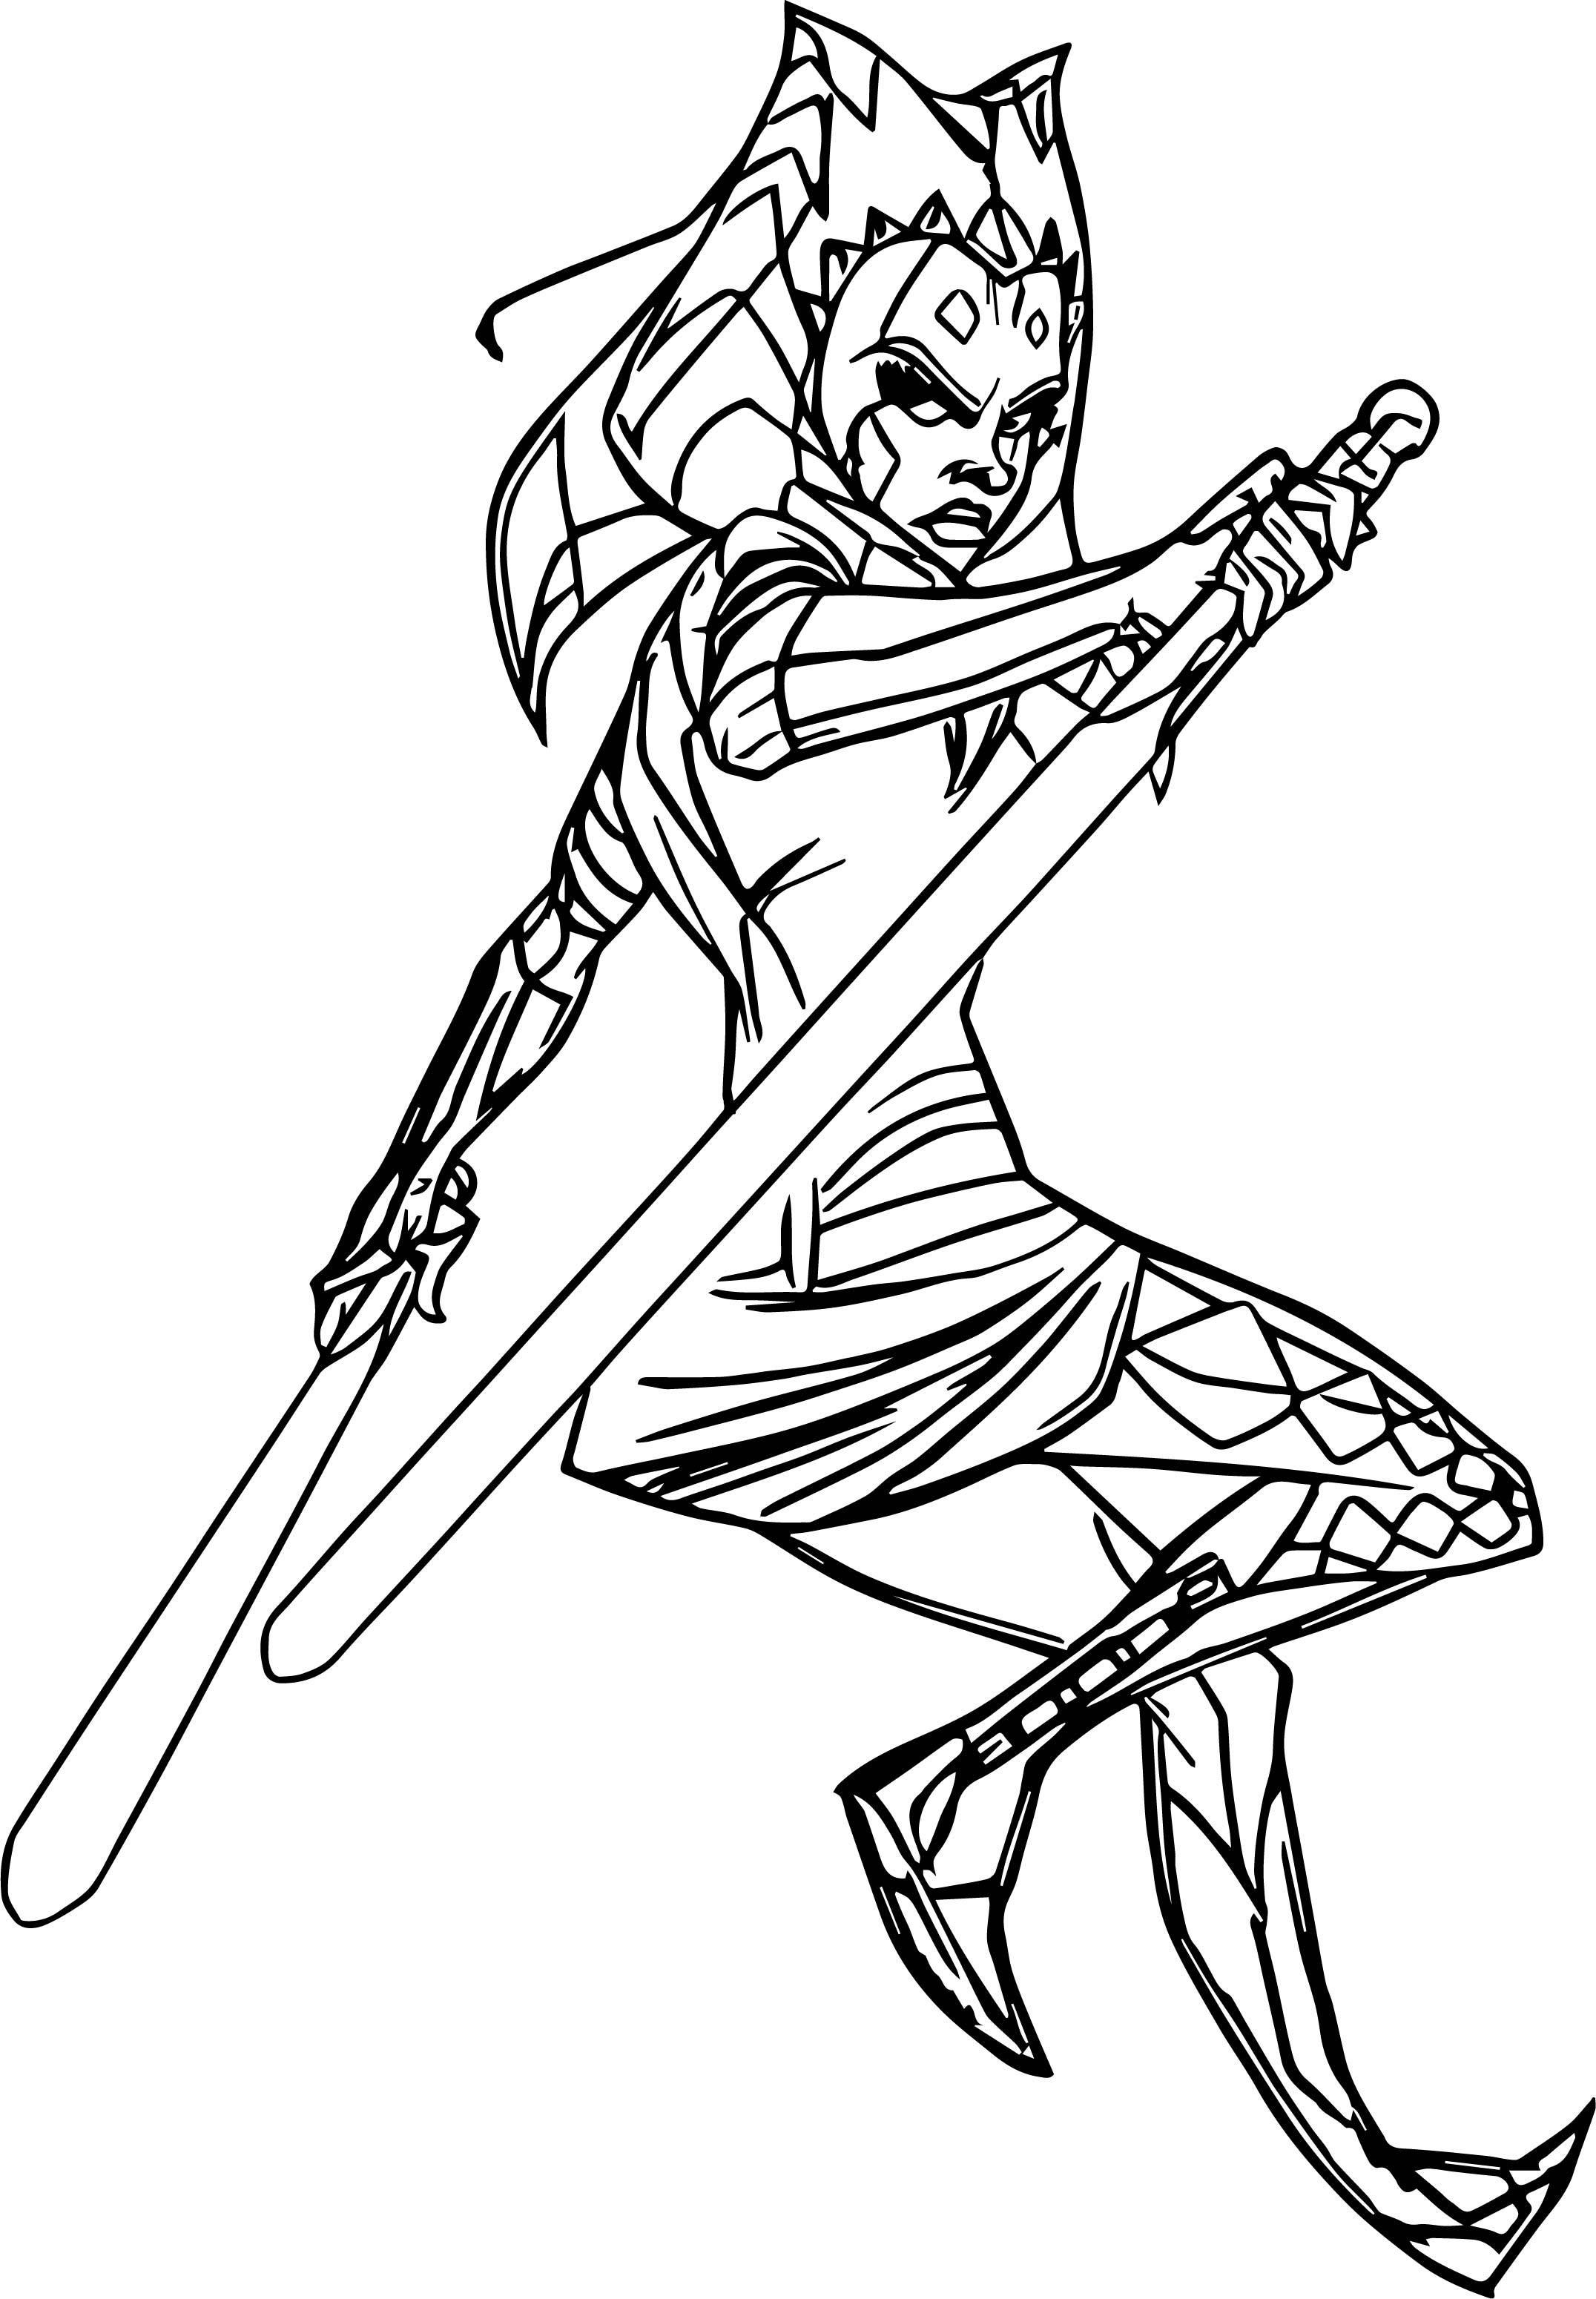 Ahsoka-Tano-Return-Coloring-Page